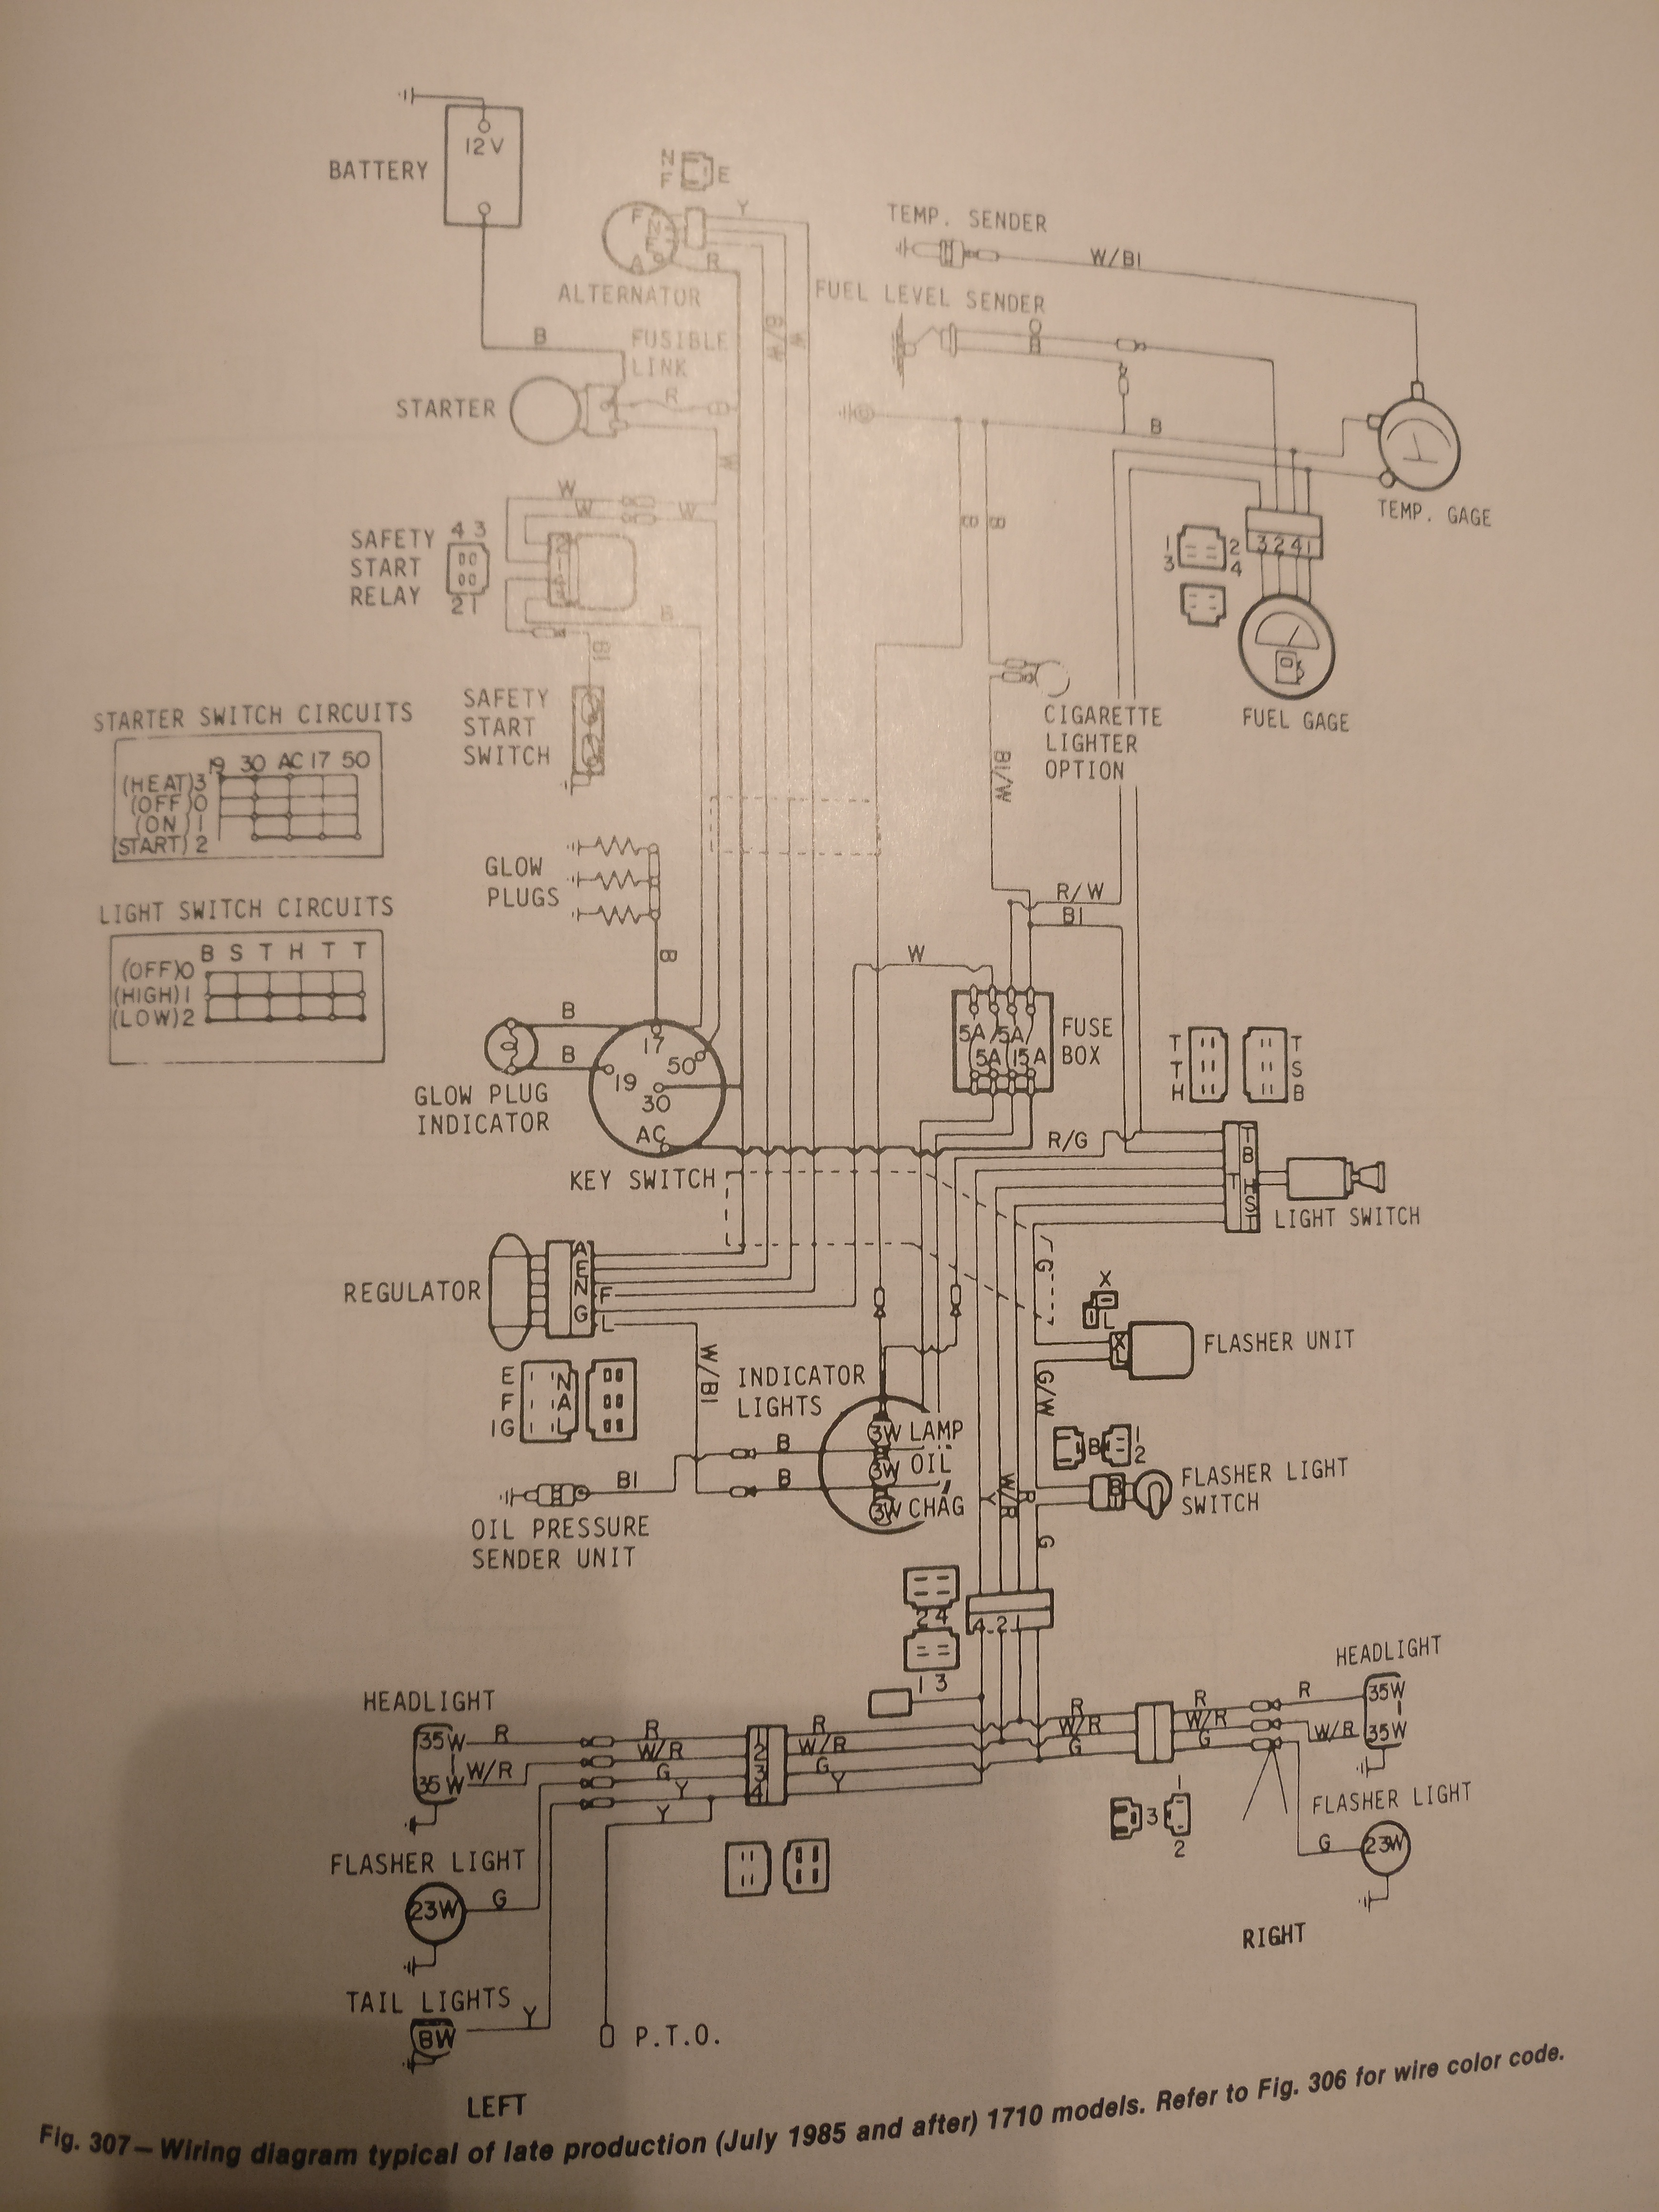 [DIAGRAM_38IS]  ZK_7847] 1984 Ford 1710 Wiring Diagram Schematic Wiring | 1984 Ford Tractor 1700 Wiring Diagram |  | Oupli Ical Vell Getap Xero Mohammedshrine Librar Wiring 101